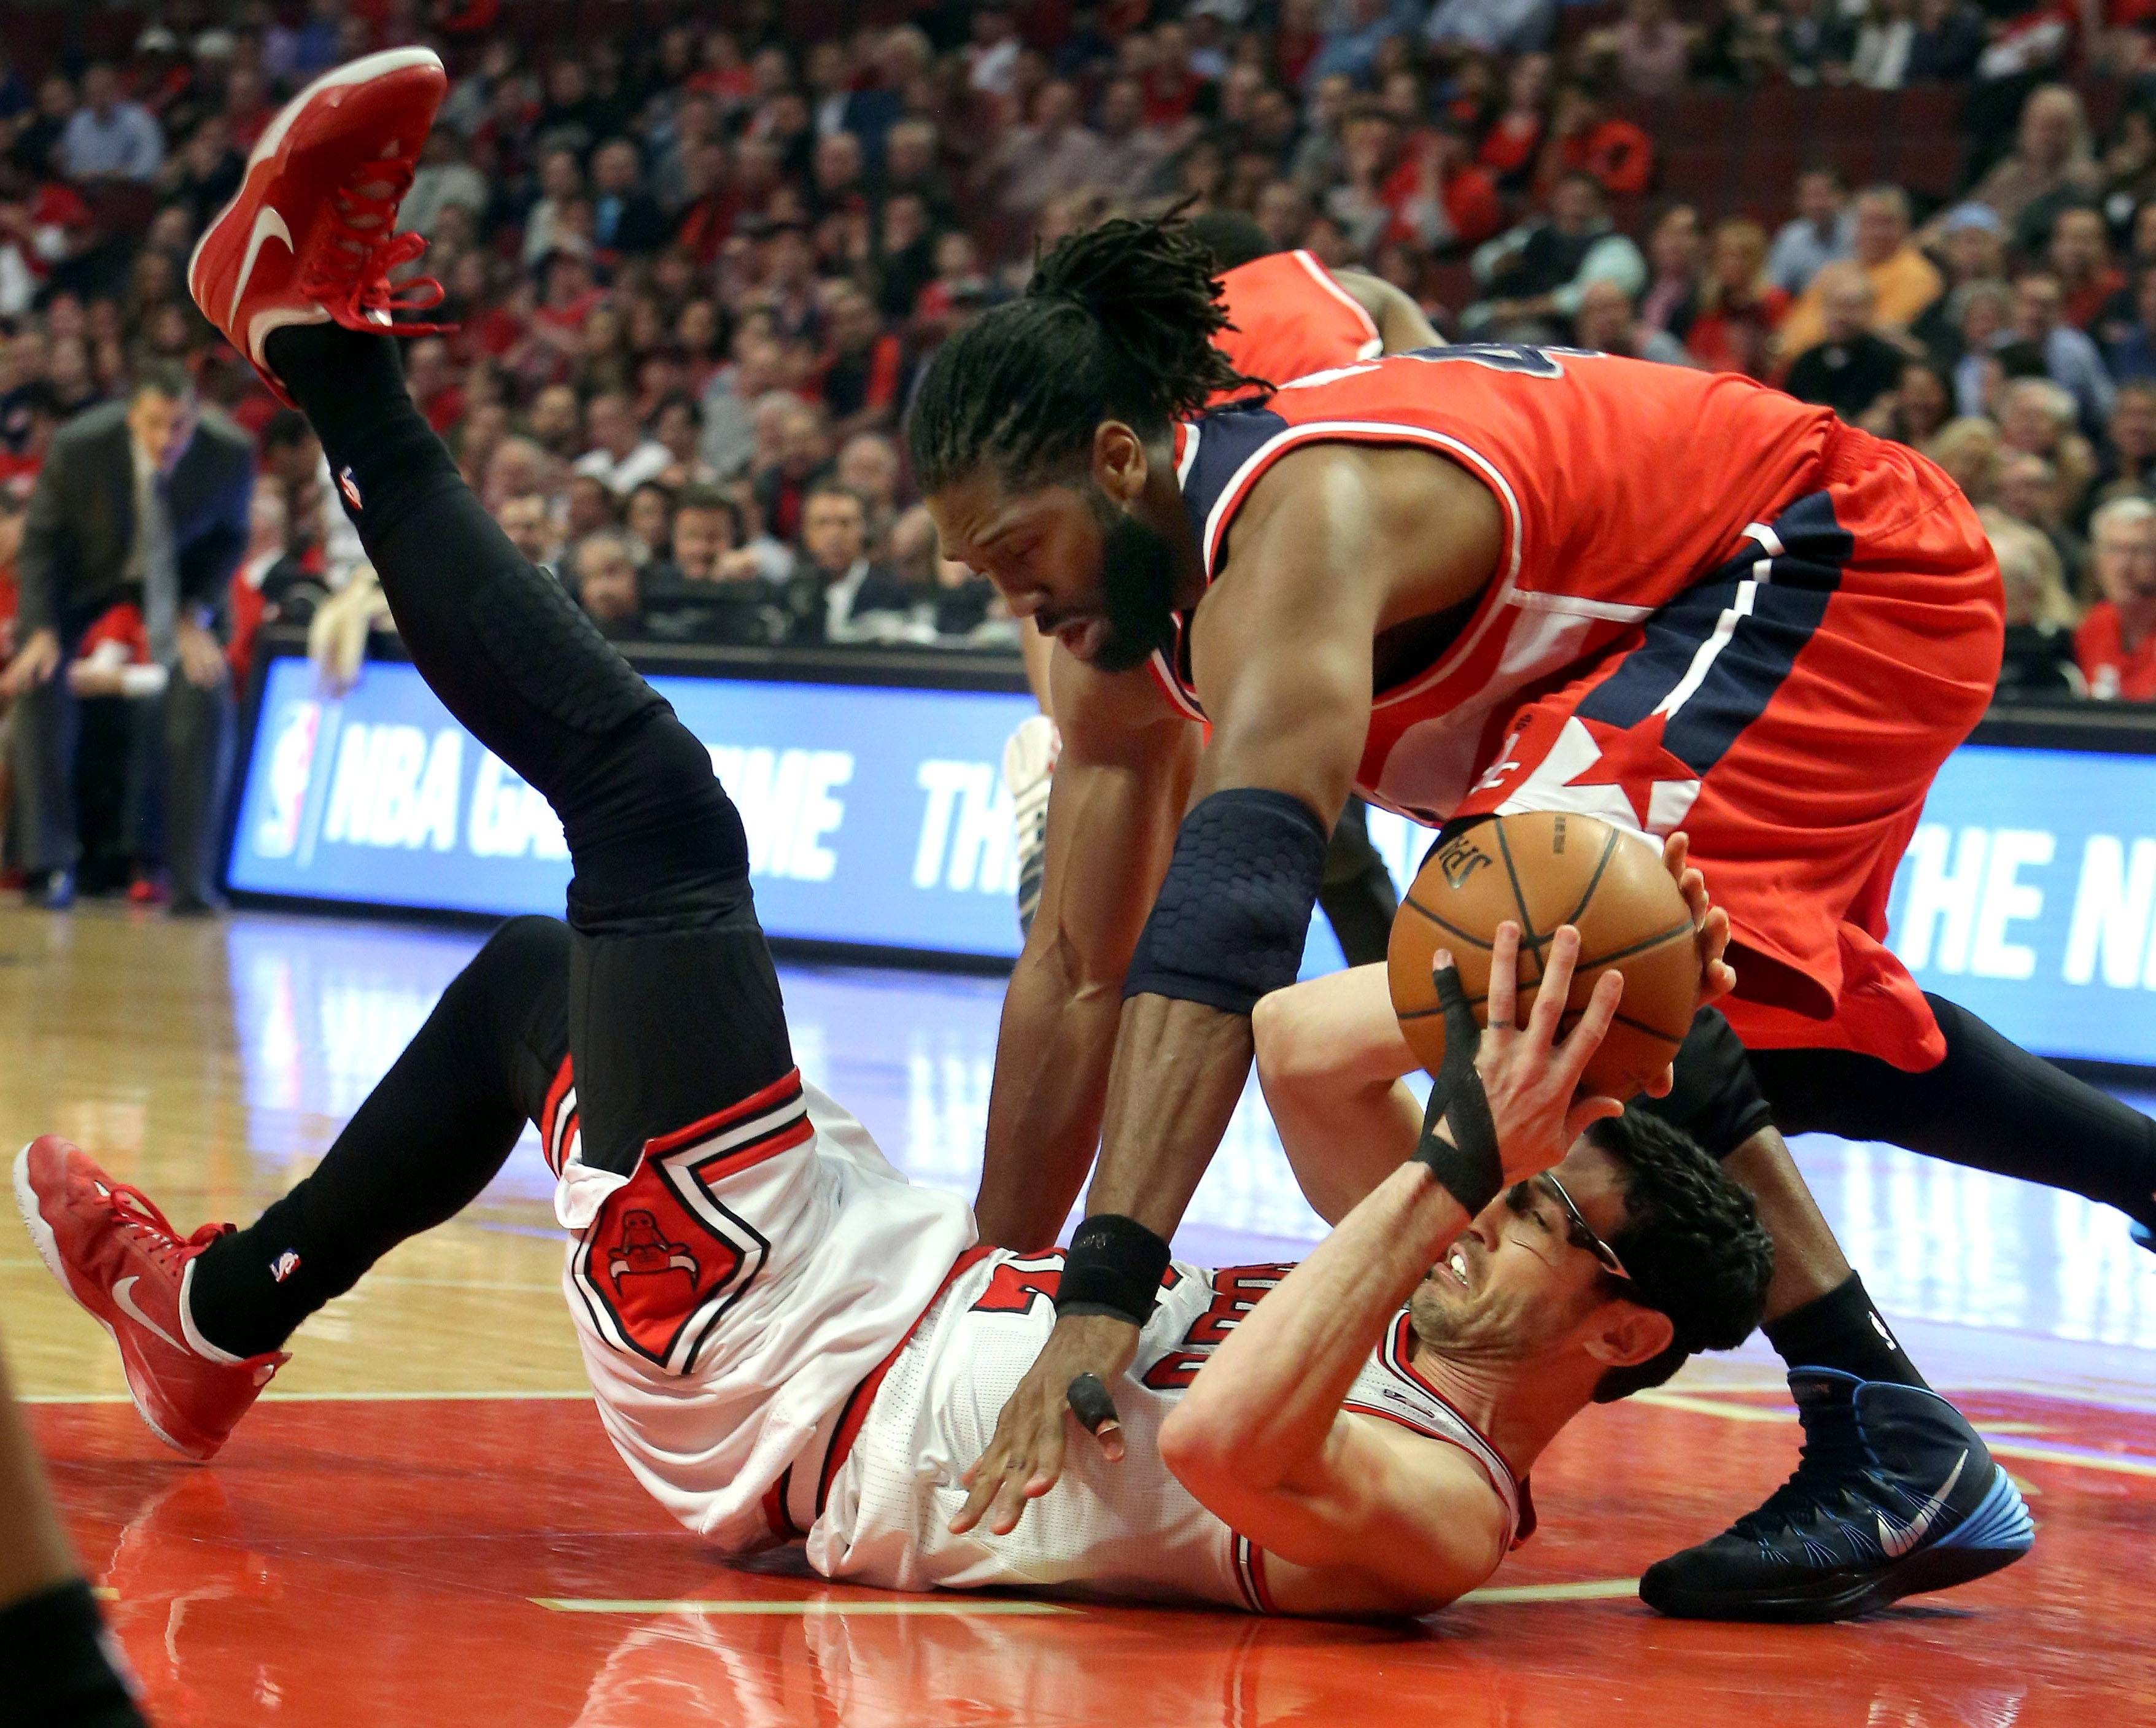 Bulls guard Kirk Hinrich scrambles for a loose ball with the Wizards' Nene defending during Tuesday night's game at the United Center.